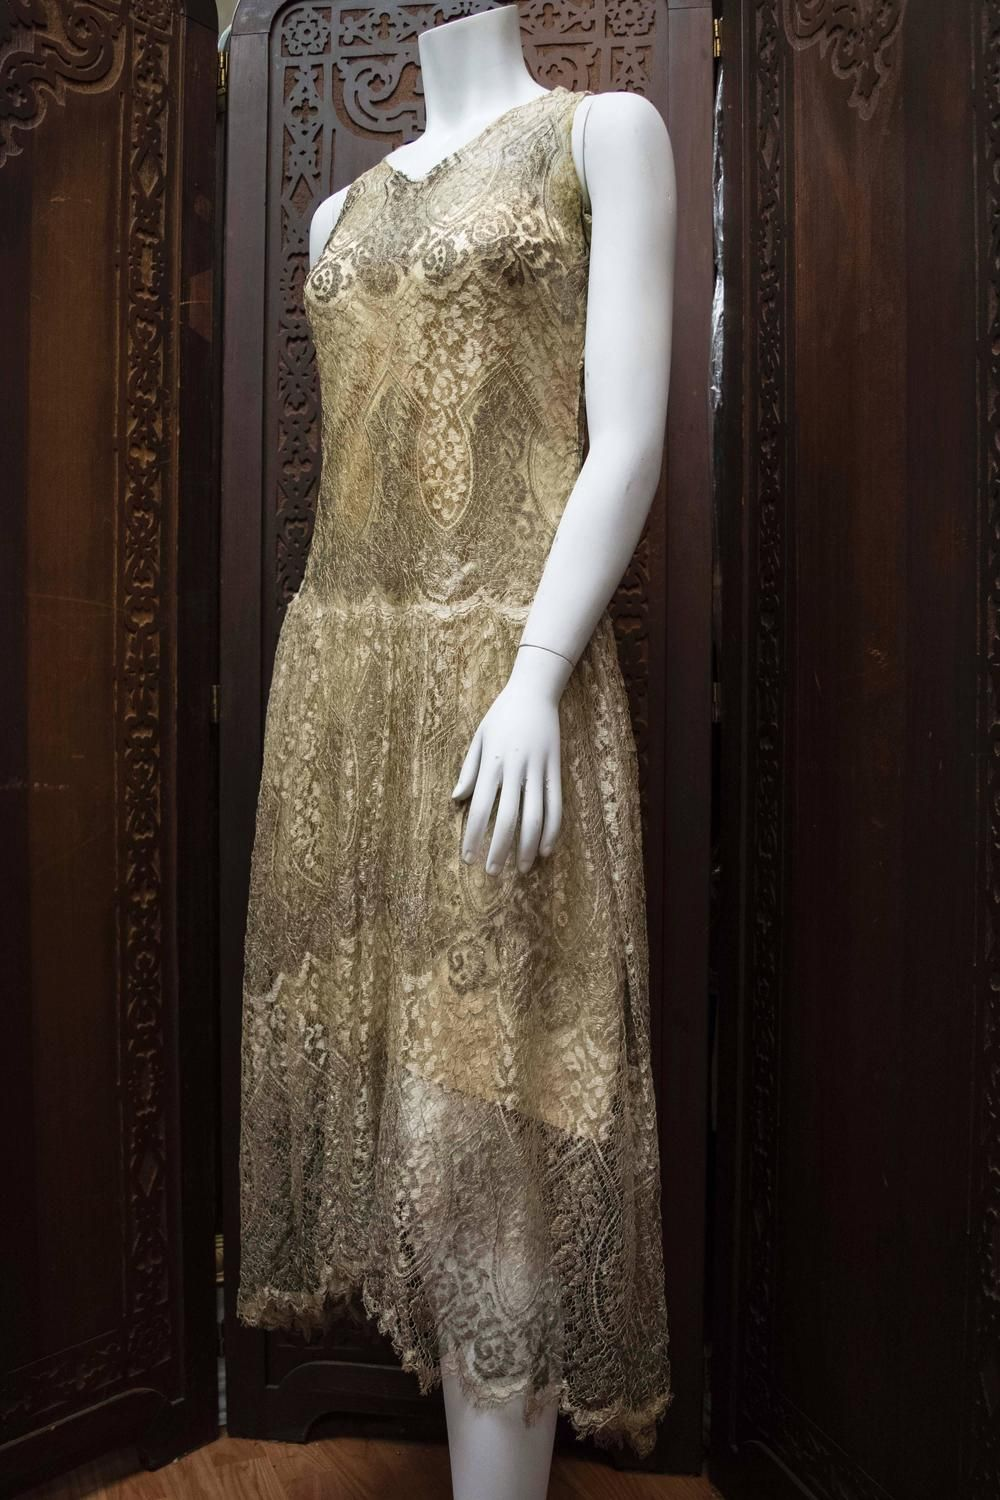 1920 wedding dress  s Silver Lamé Lace Dress This piece is incredibly rare